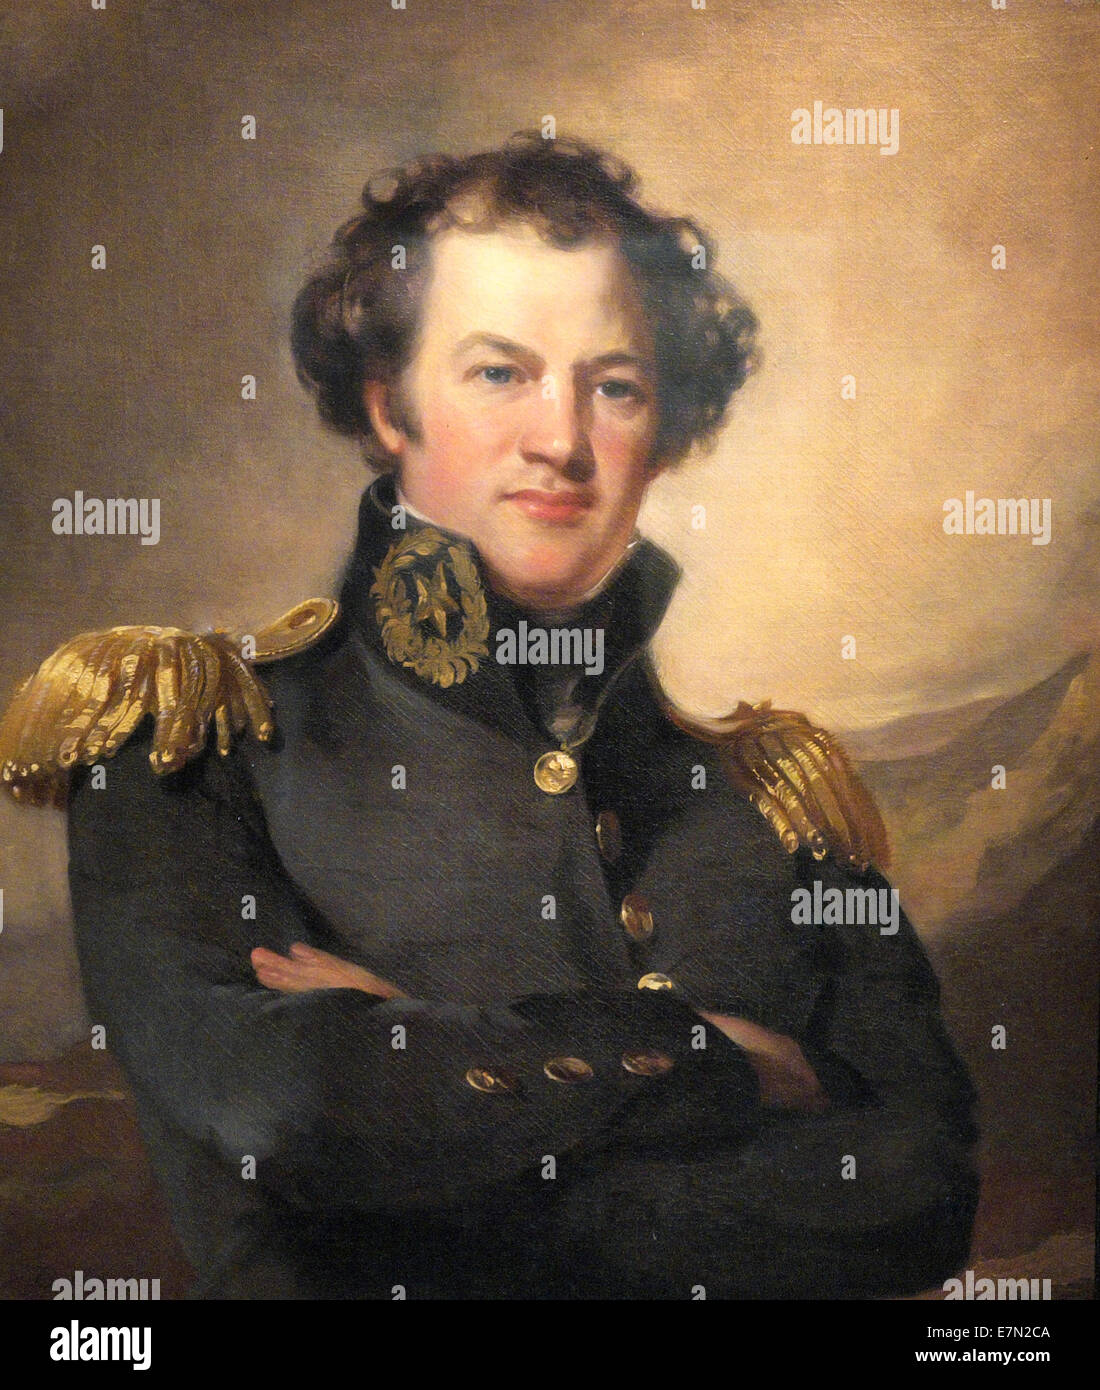 Alexander Macomb, commanding General of USA Army from 1828 to 1841 Stock Photo